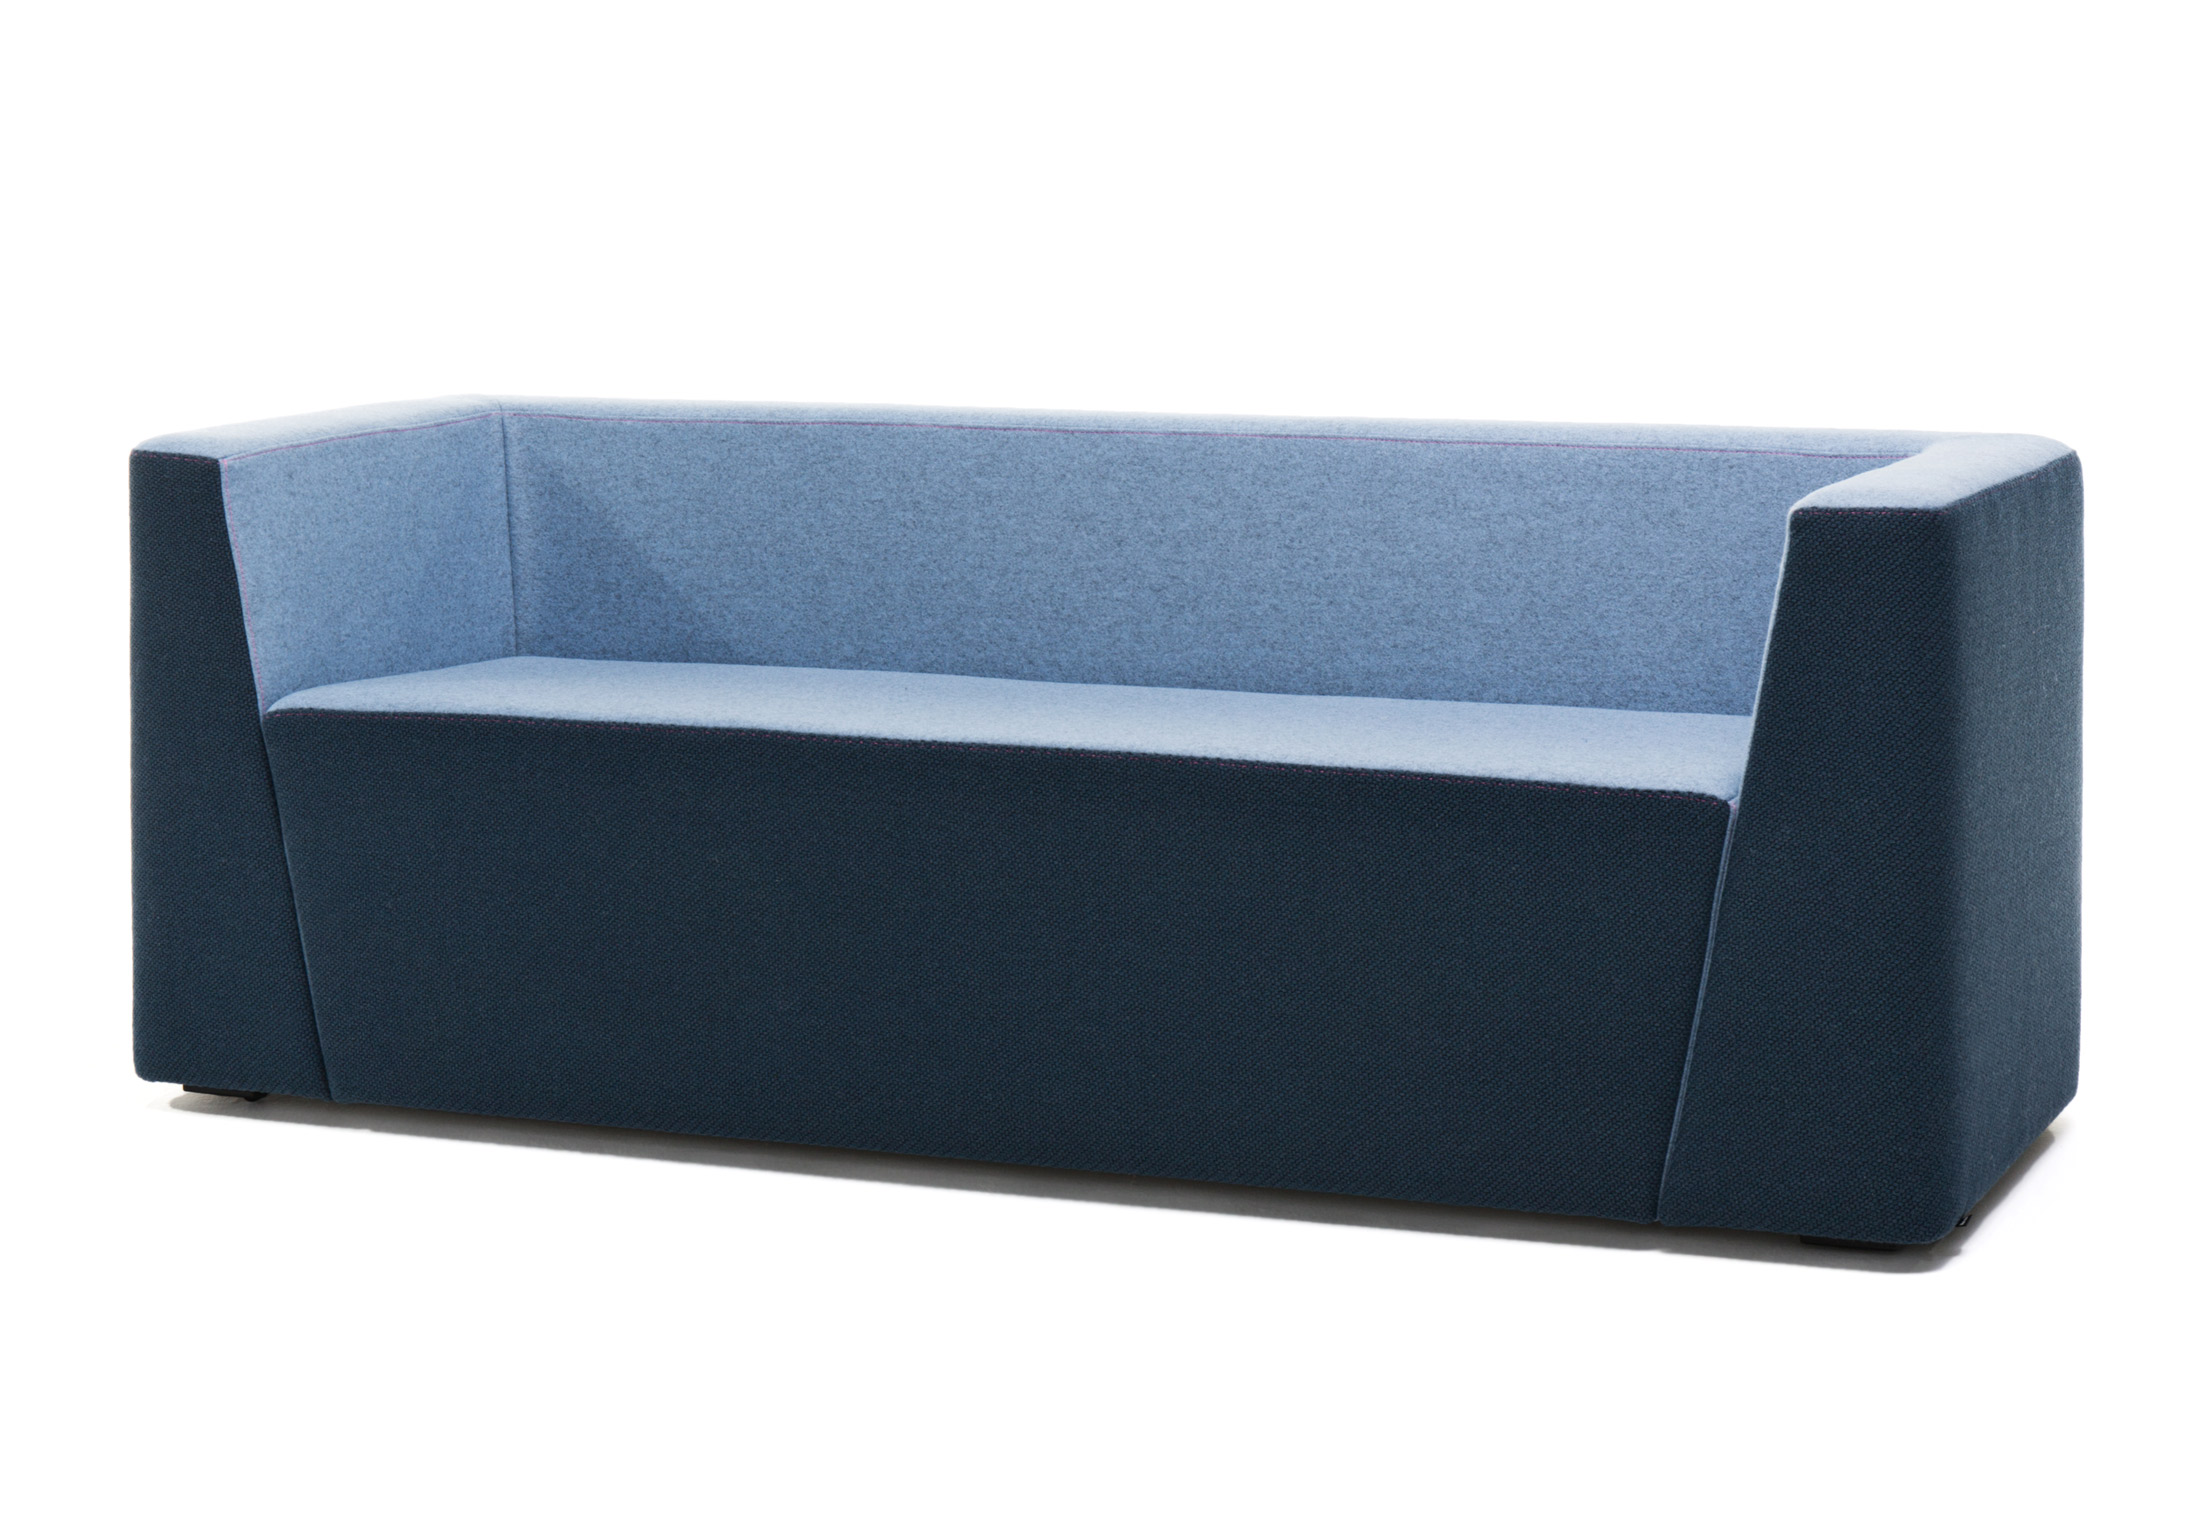 Giantex 2 Seat Sofa Couch Home Office Modern Loveseat